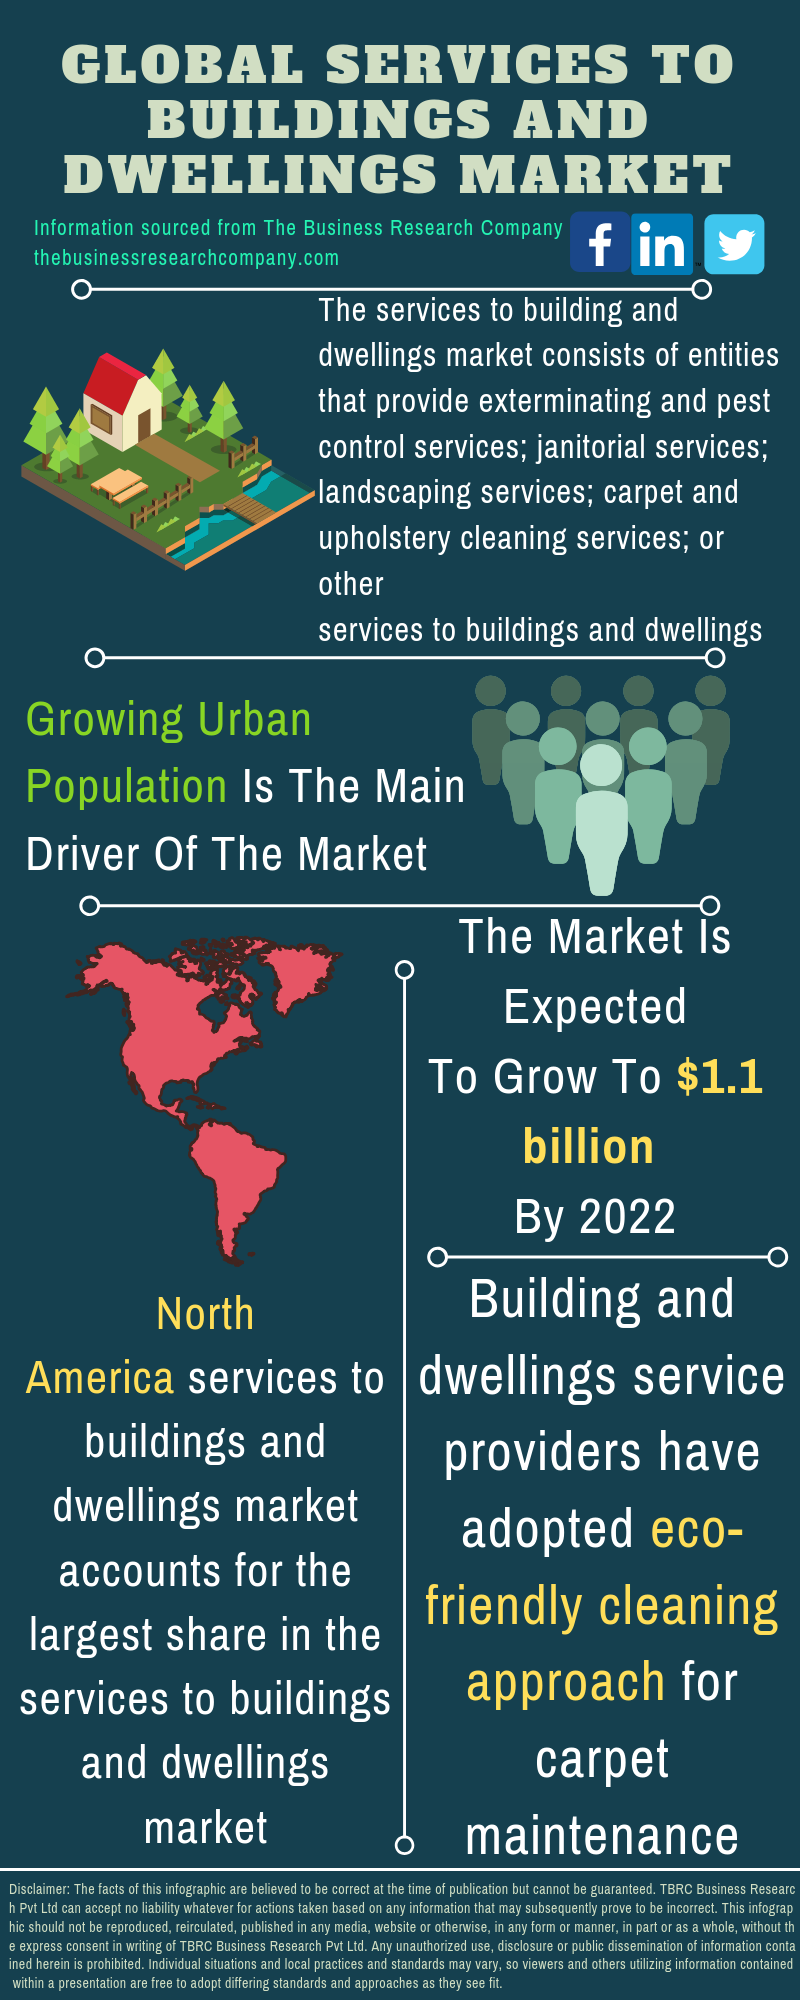 Services To Buildings And Dwellings Market